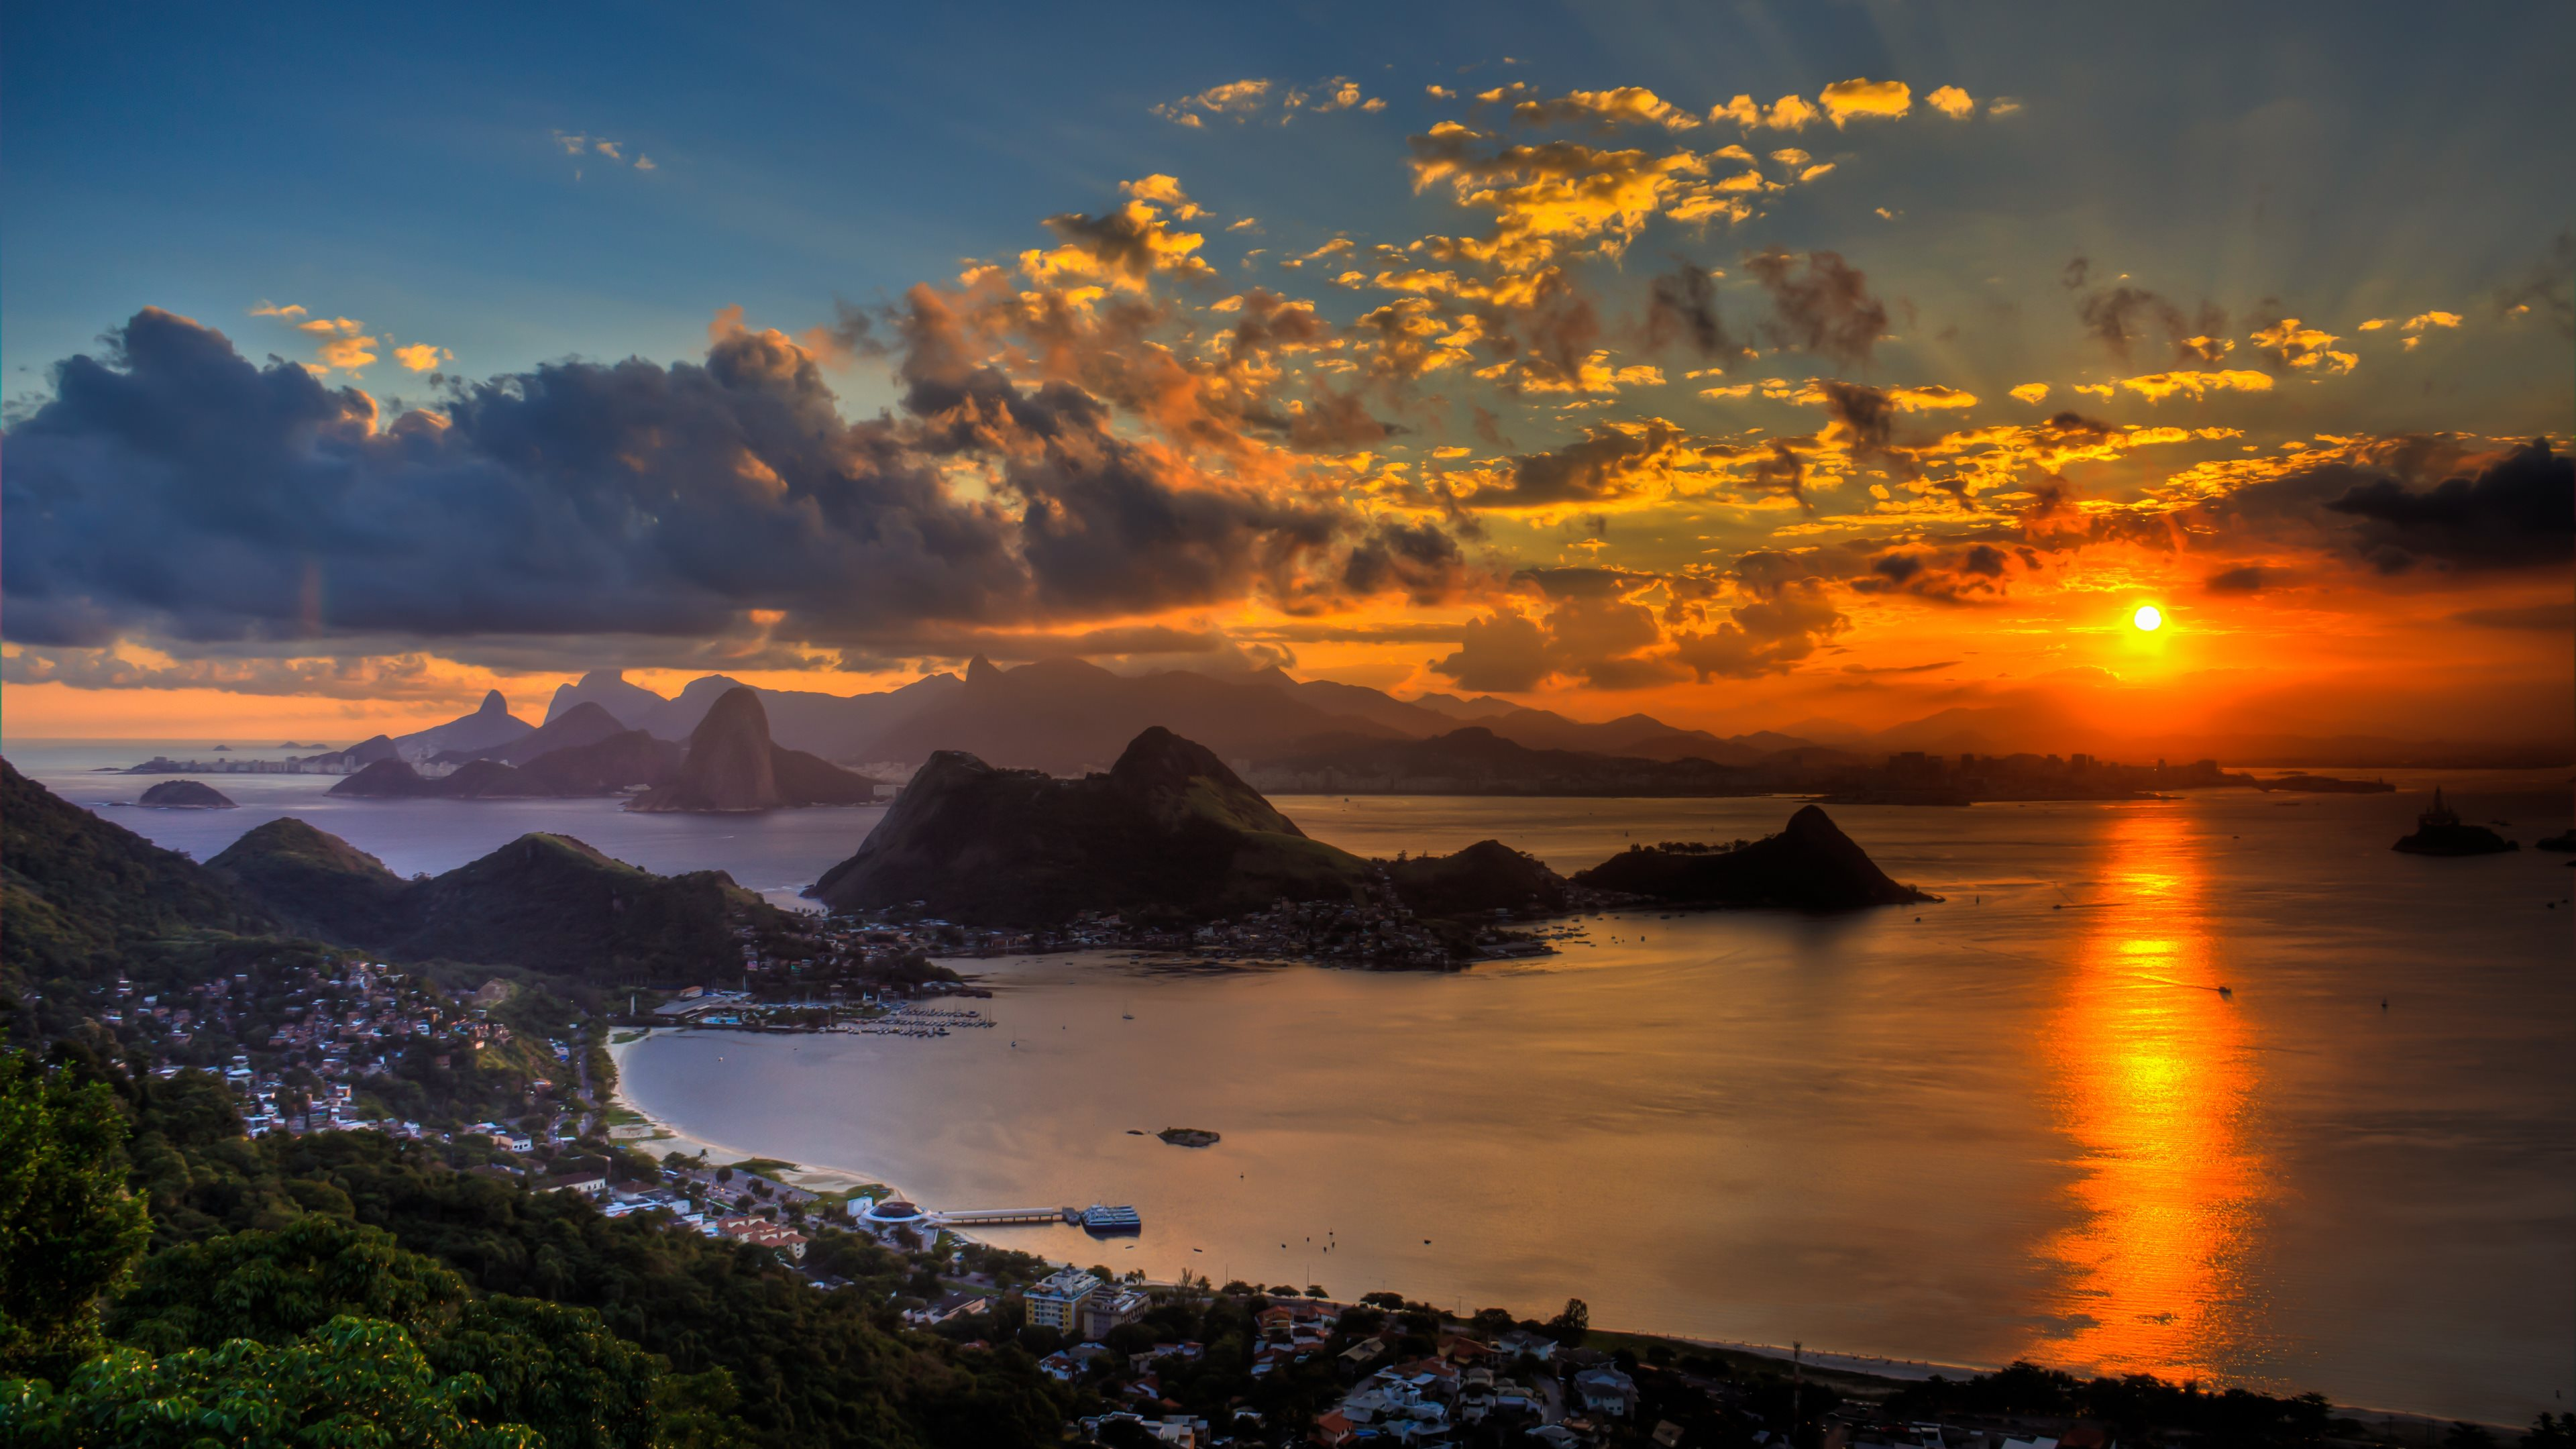 sunset at rio de janeiro wallpapers in hd 4k and wide sizes